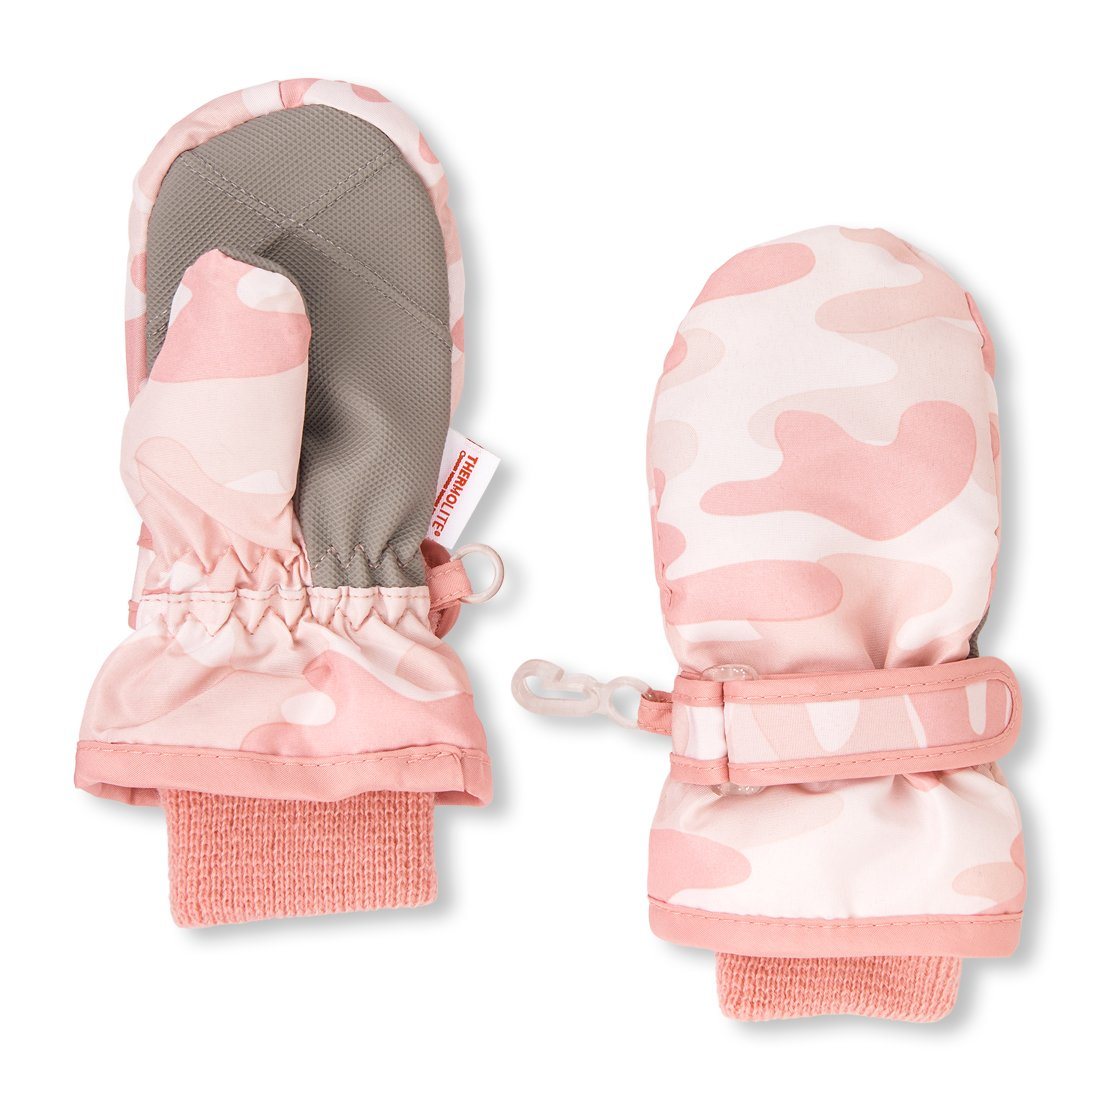 40cd22eef Amazon.com  The Children s Place Baby Girls 3in1 Cold Weather Mitten ...